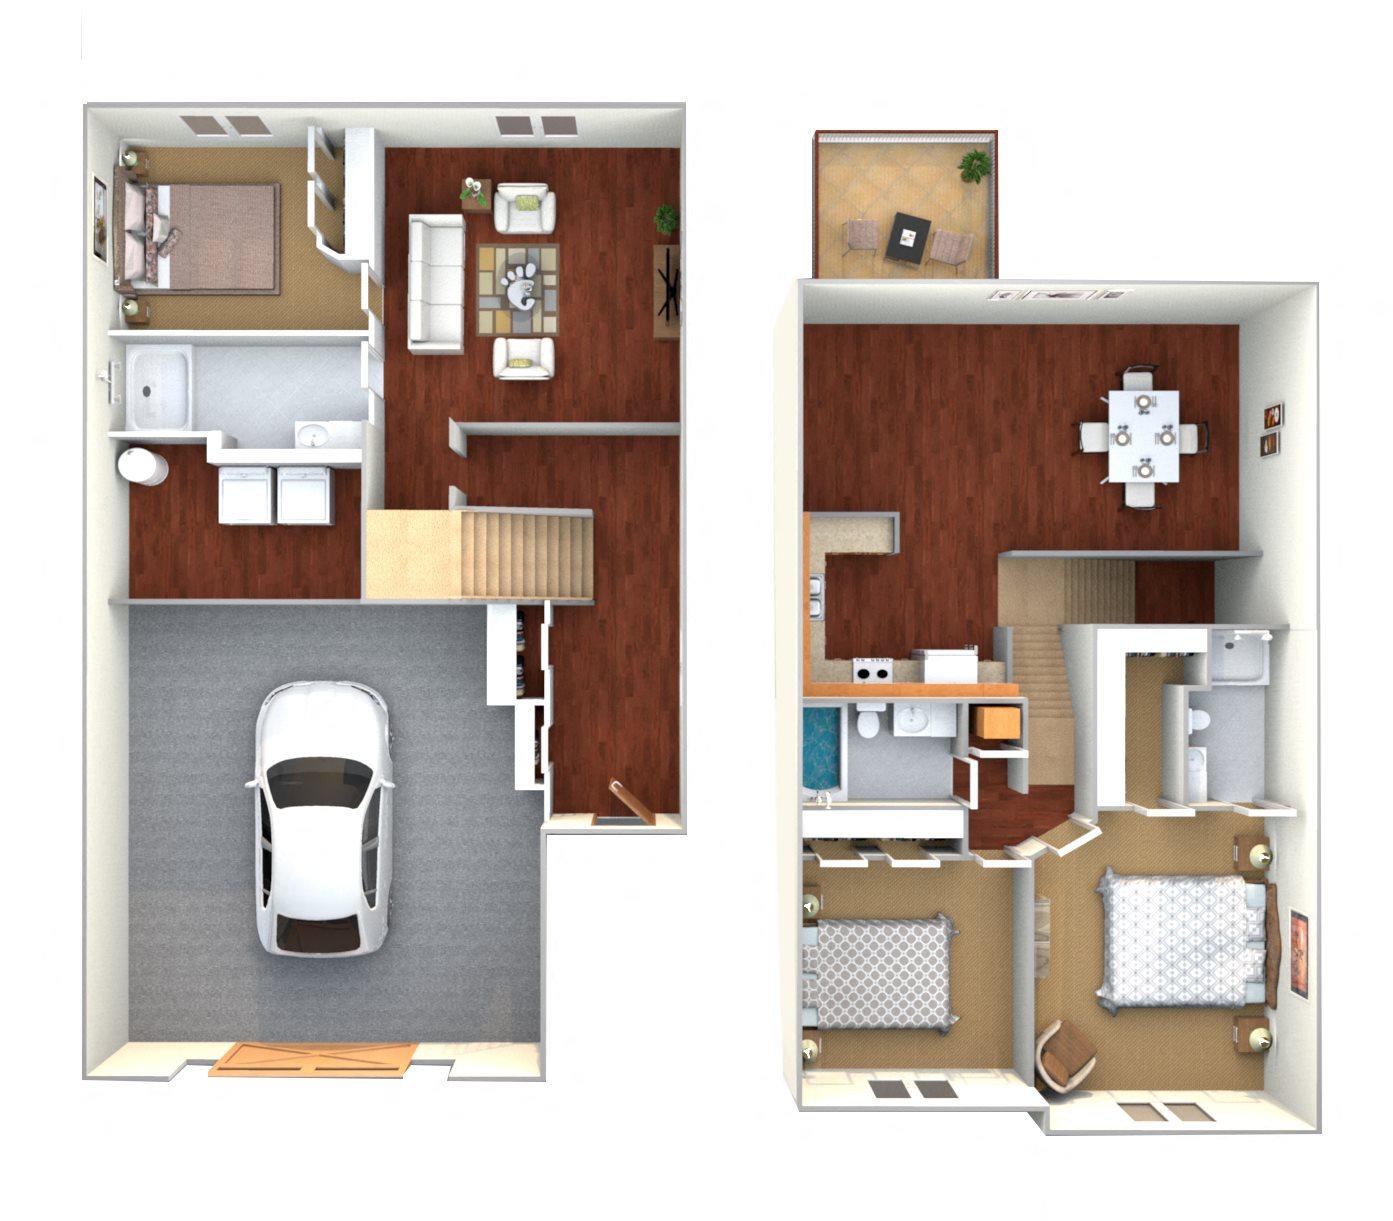 Tustin Townhomes | Apartments in Fargo, ND | RENTCafe on the king of queens house floor plan, terra nova house floor plan, isaac bell house floor plan, last man standing house floor plan, blue bloods house floor plan, two and a half men house floor plan, the fosters house floor plan, bates motel house floor plan, raising hope house floor plan, san francisco house floor plan, ghost whisperer house floor plan, keeping up appearances house floor plan, fairbanks house floor plan, modern family house floor plan, greek house floor plan, being human house floor plan, north by northwest house floor plan, something's gotta give house floor plan, family matters house floor plan, the sopranos house floor plan,